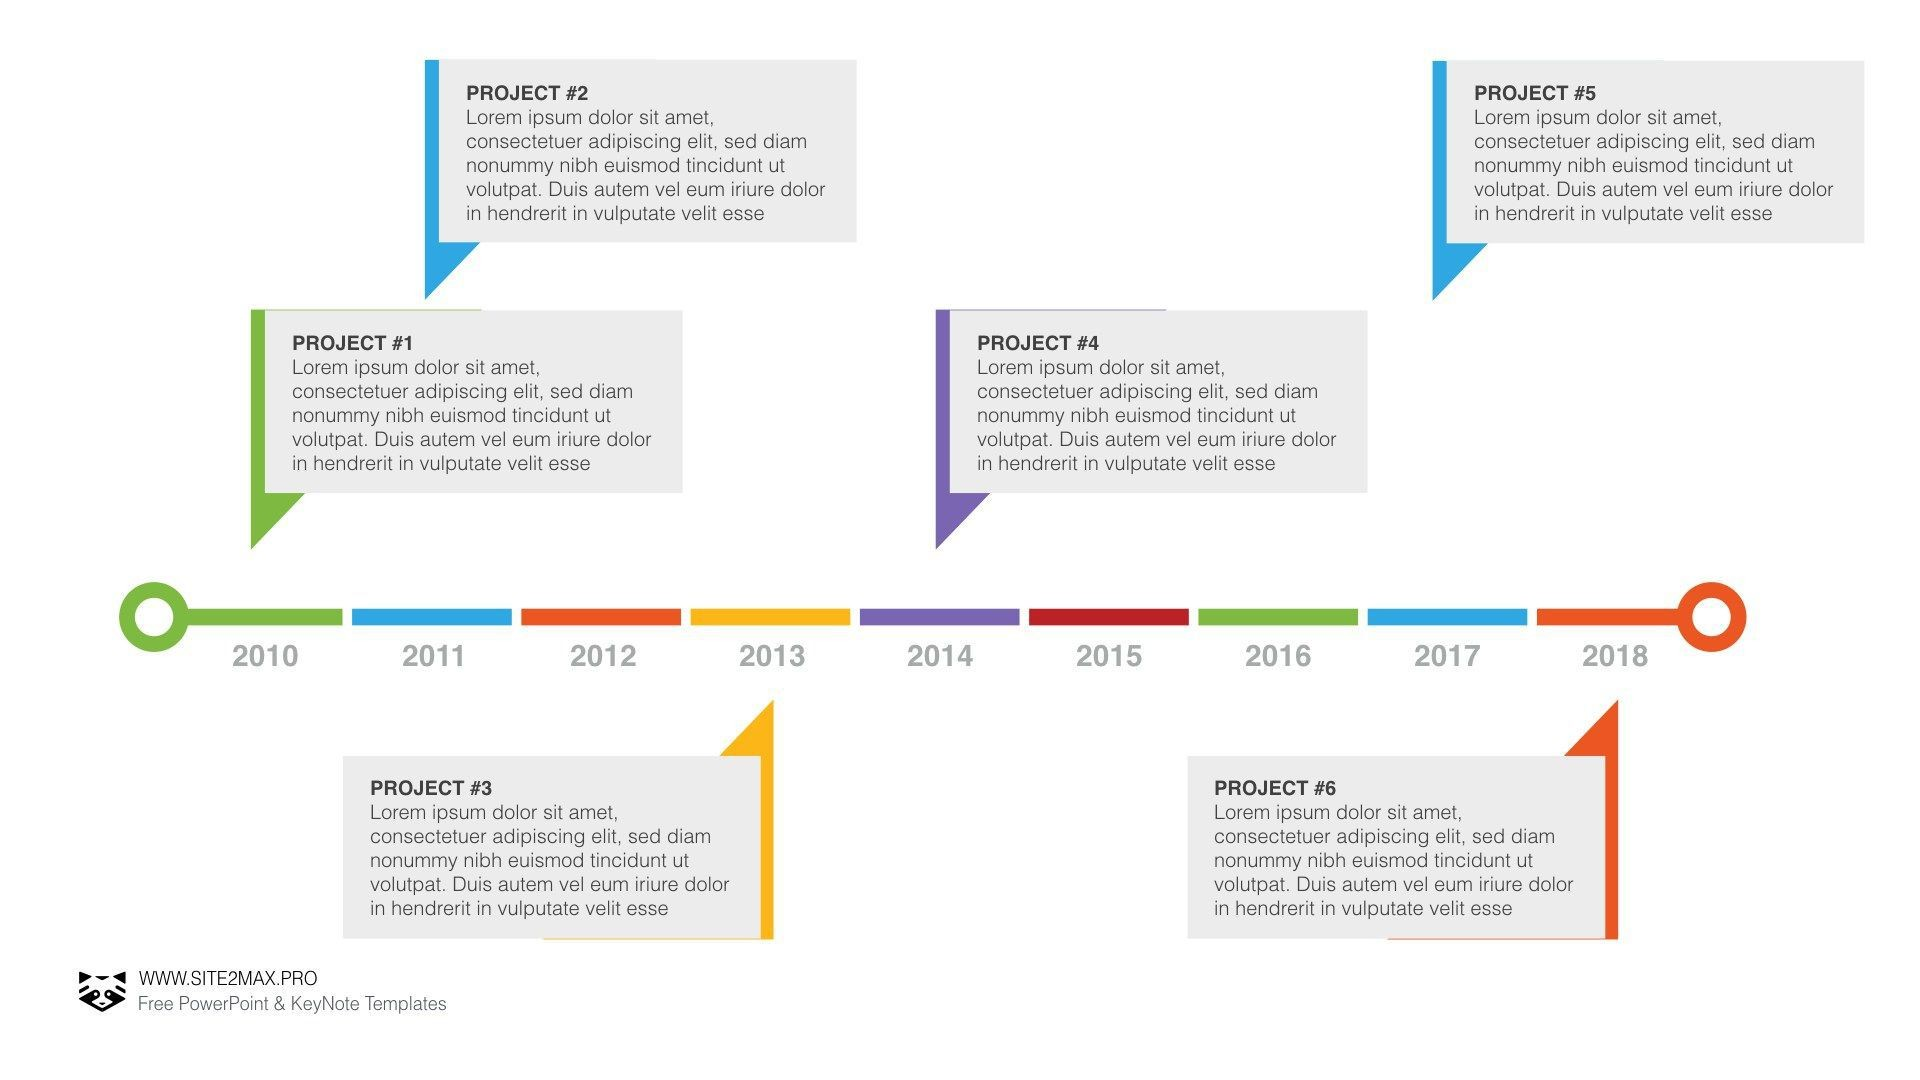 004 Remarkable Powerpoint Timeline Template Free Download Concept  Project History1920